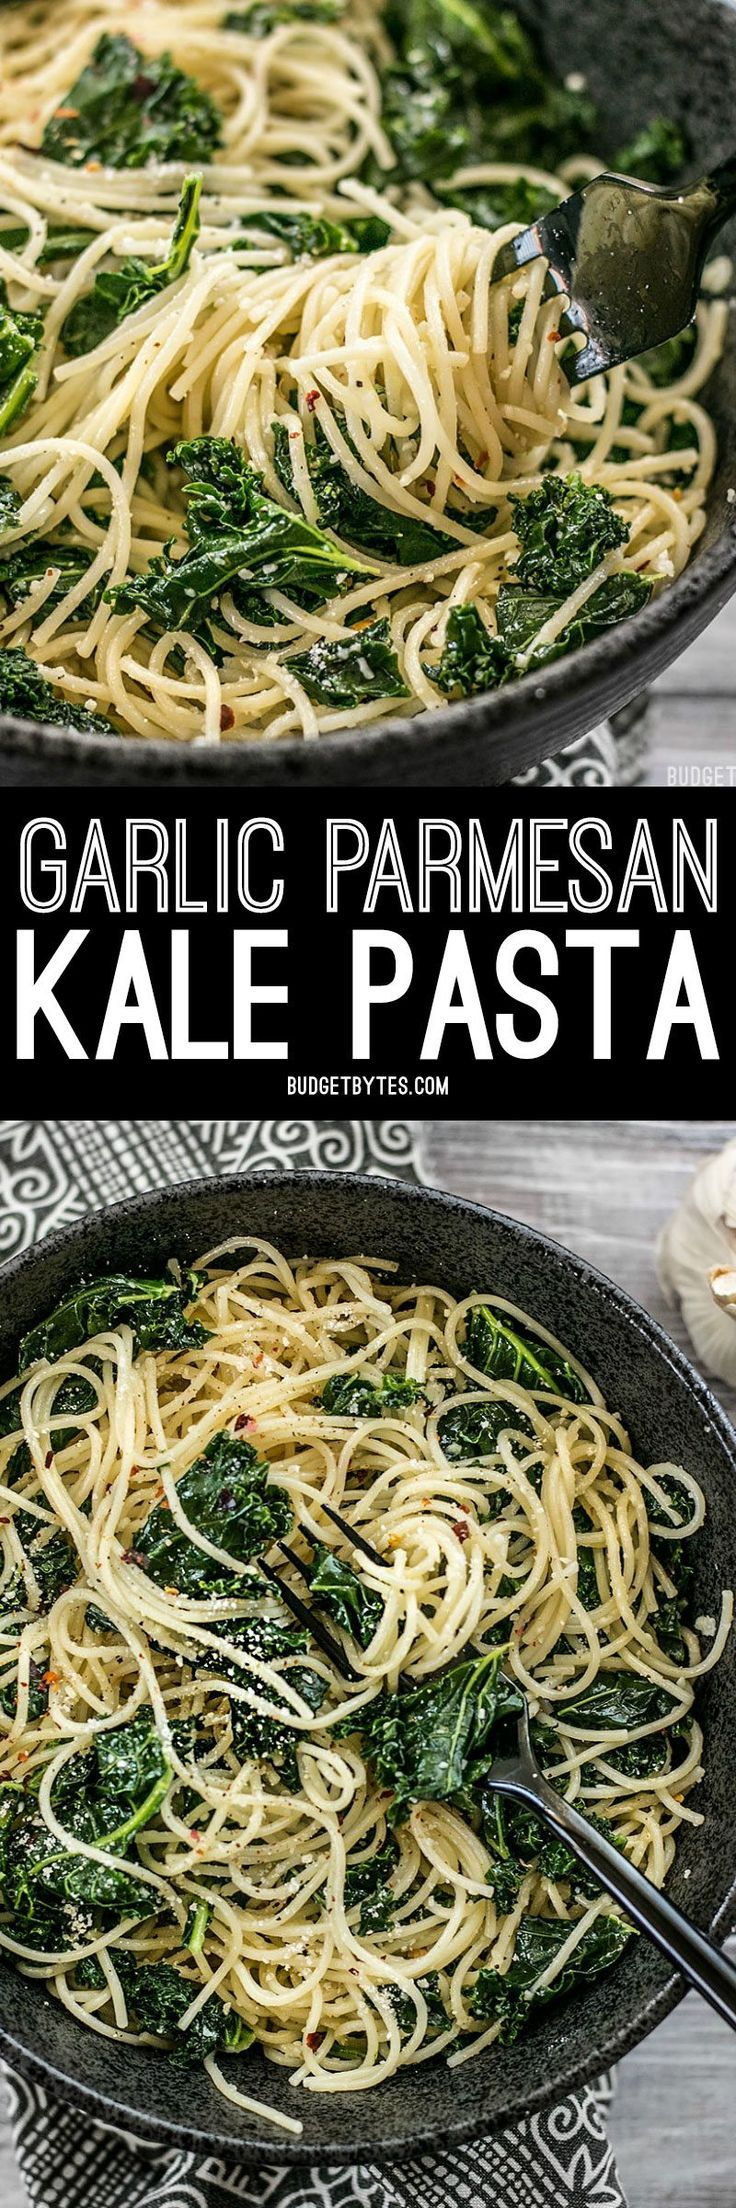 When you're in a hurry, this Garlic Parmesan Kale Pasta is a filling and flavorful meal. Few ingredients, BIG flavor. @budgetbytes